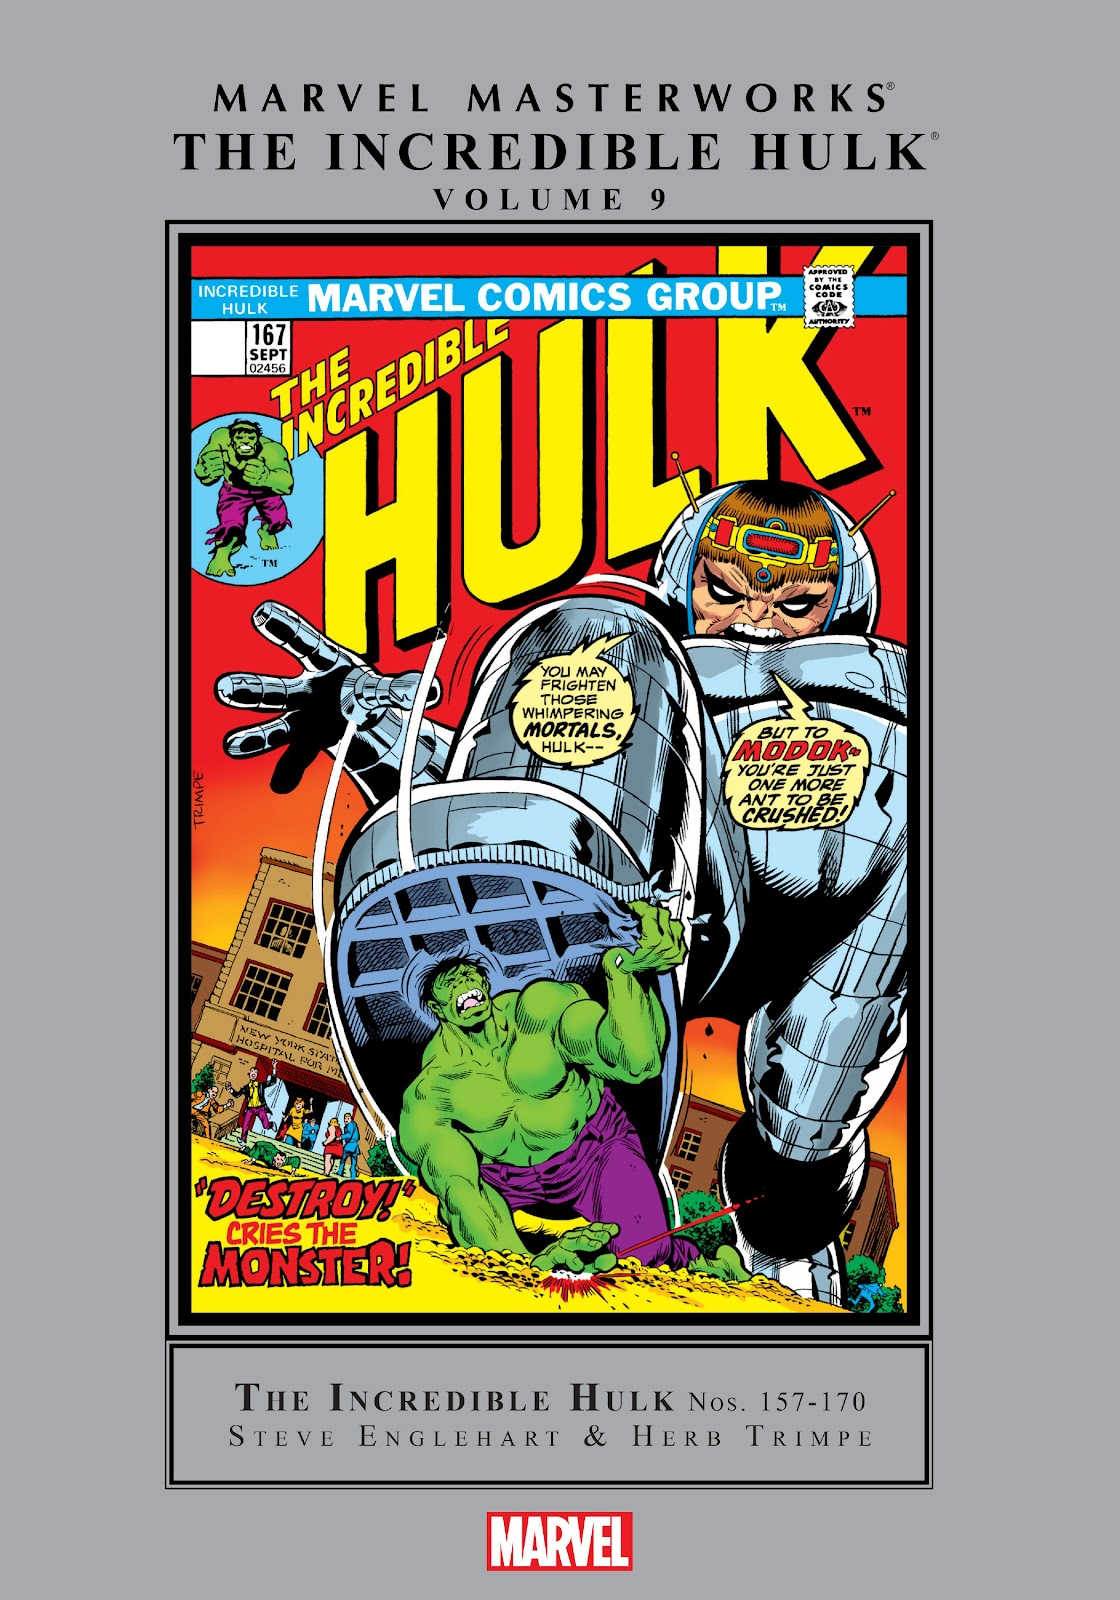 Read online Marvel Masterworks: The Incredible Hulk comic -  Issue # TPB 9 (Part 1) - 1